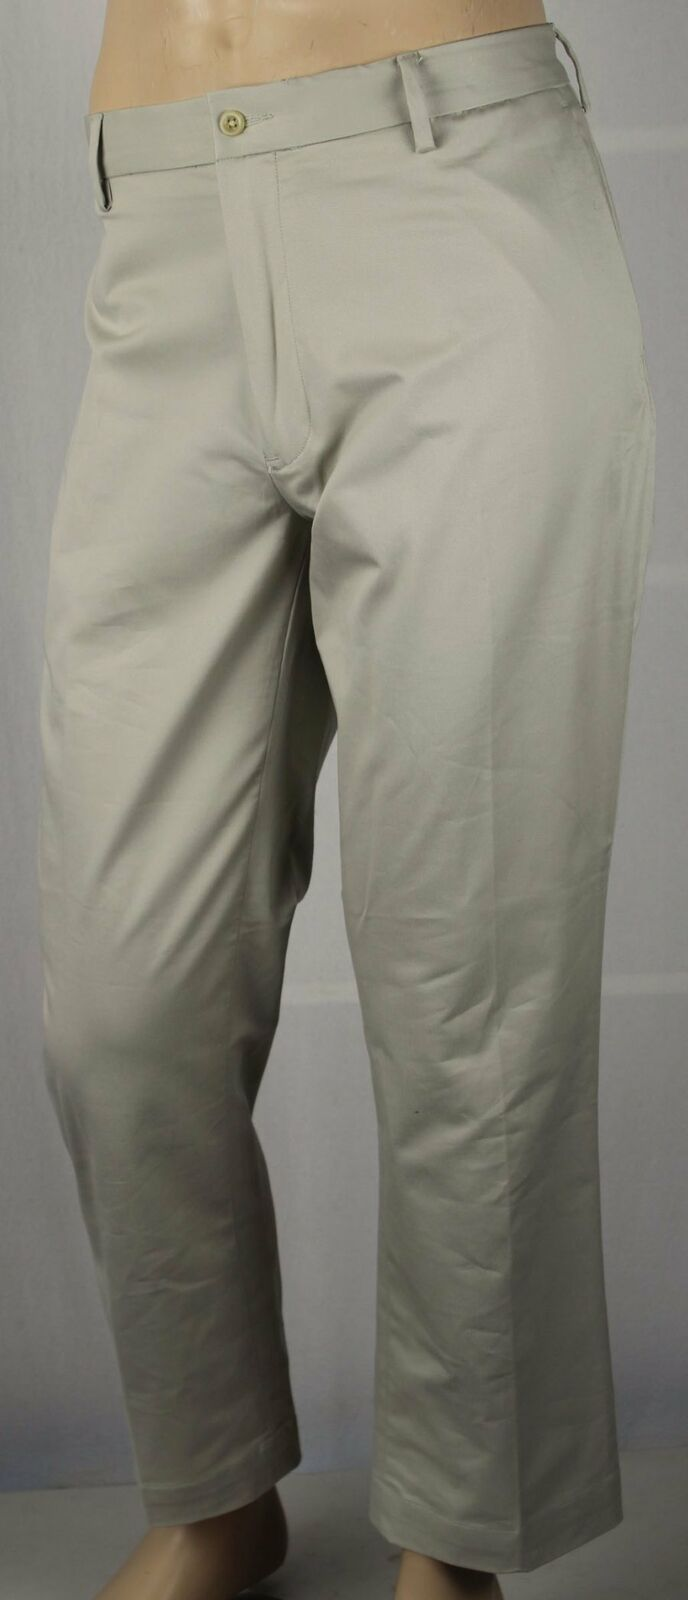 Polo Ralph Lauren Beige Stretch Classic Fit Flat Front Pants NWT